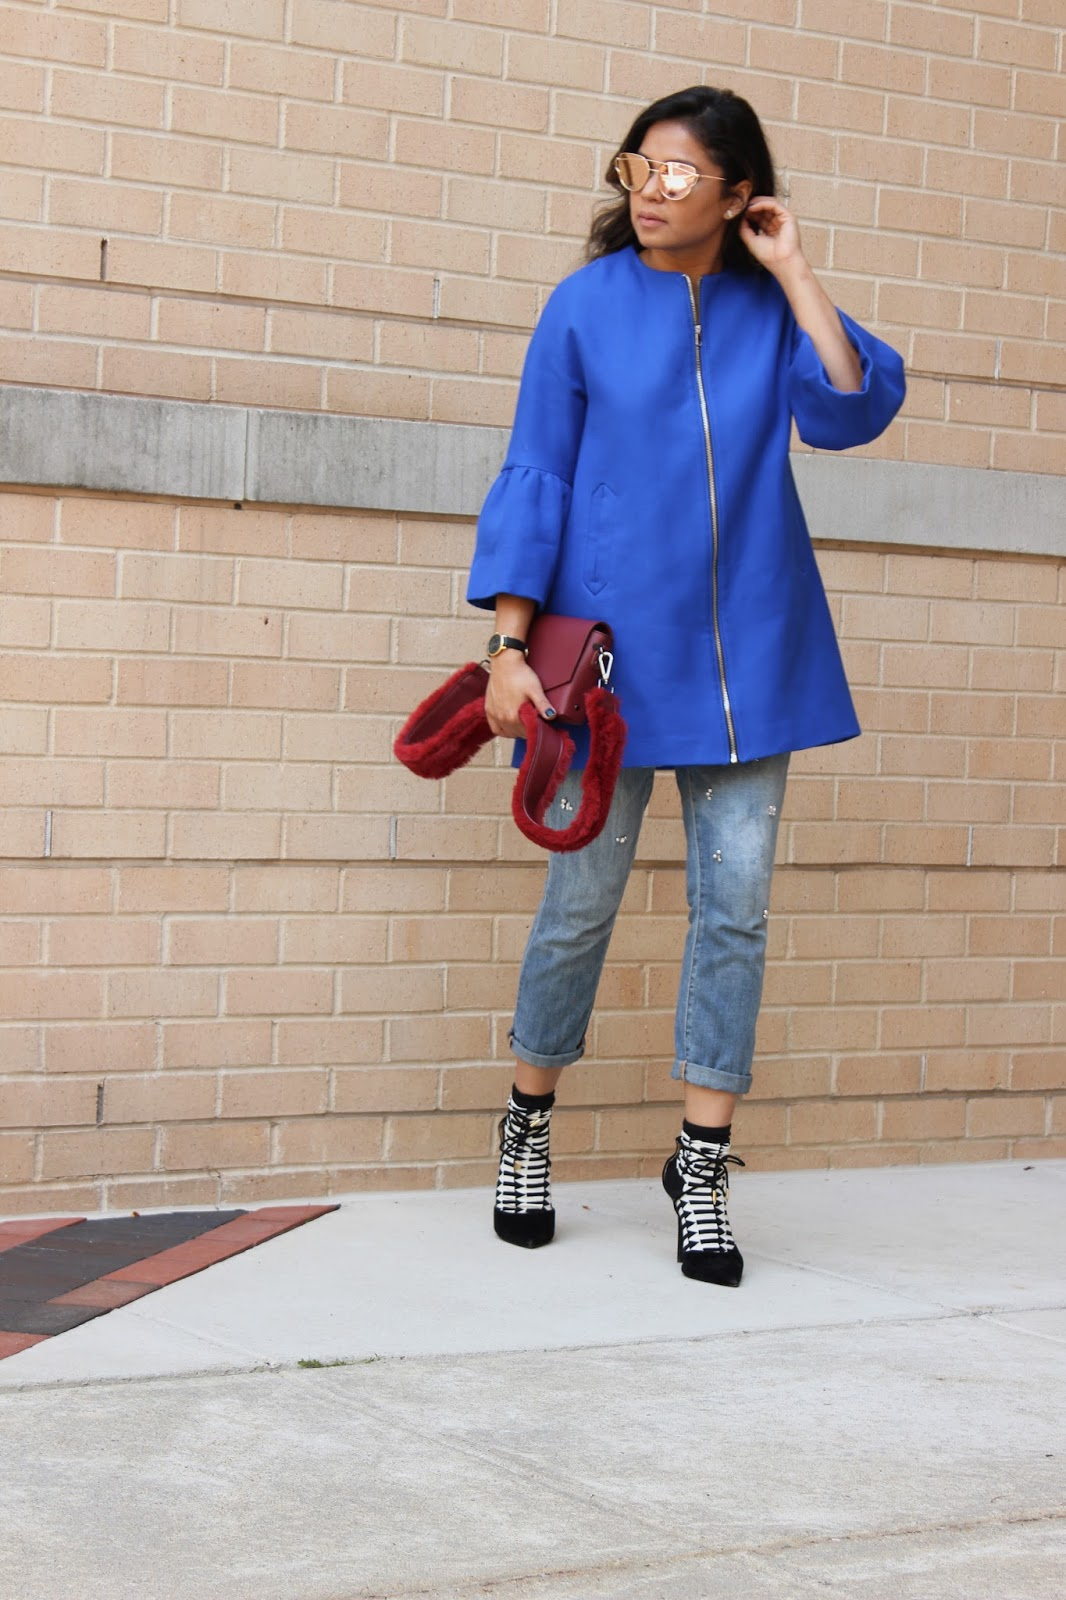 how to wear socks with sandals, high heels, fall fashion, trumpet sleeve blazer, embellished jeans, zara blue jacket , street style, bloger, fashion, style, myriad musings